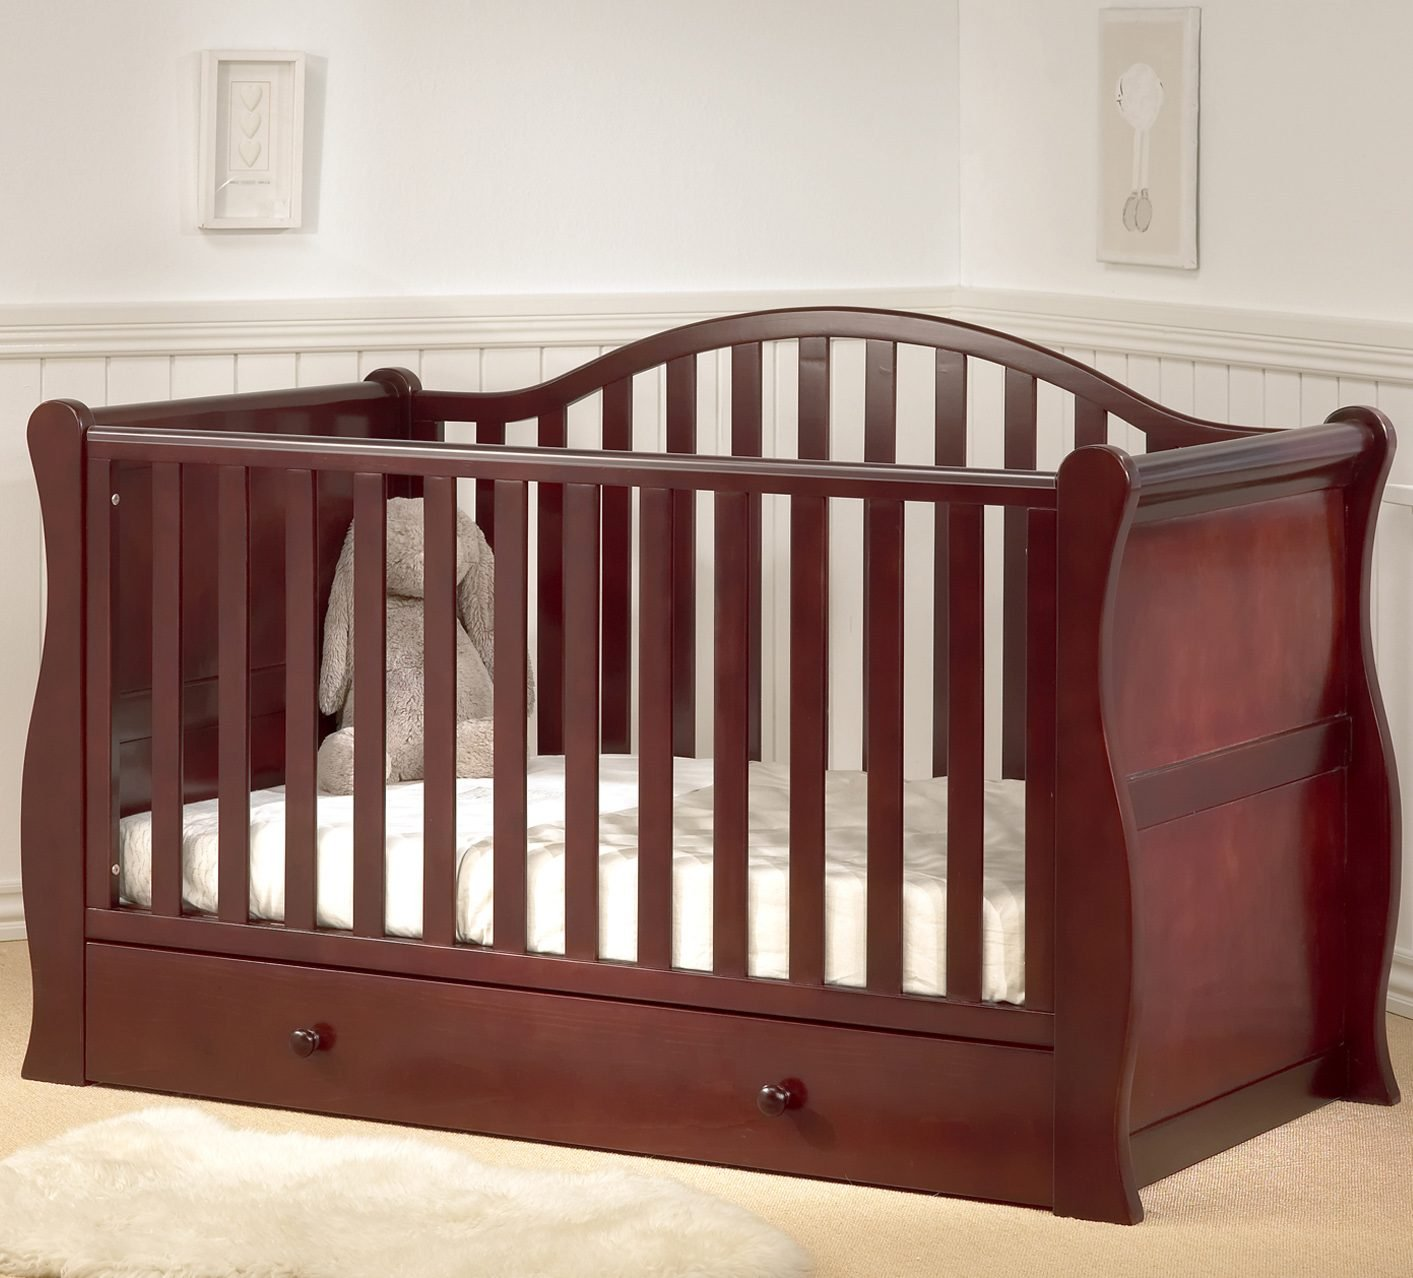 Cot Bed For Sale Ireland